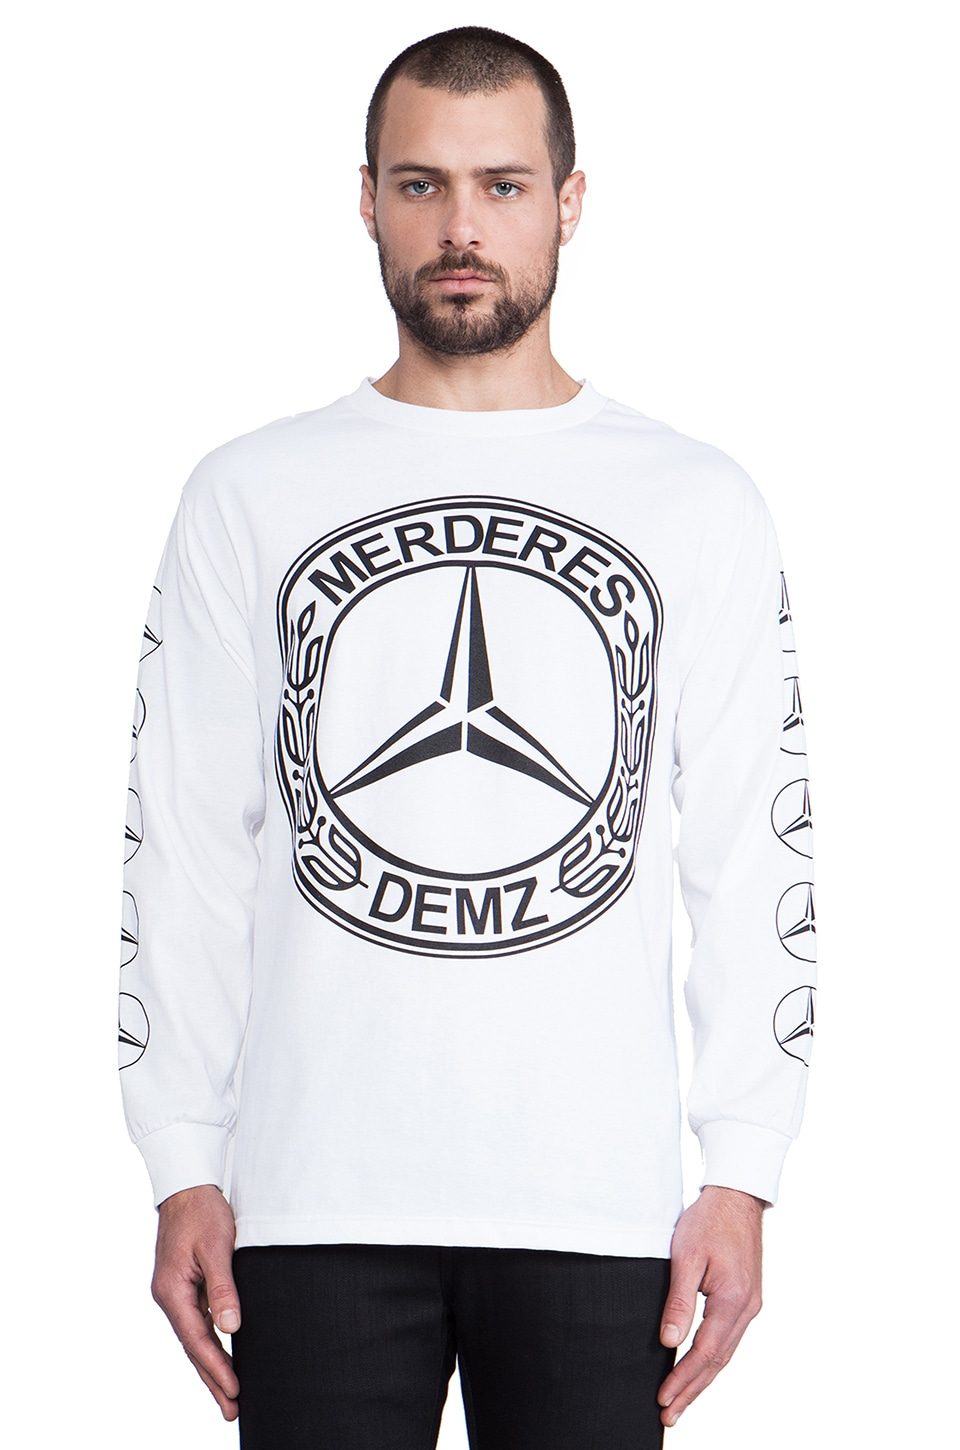 1992 Demz Long Sleeve Tee in White